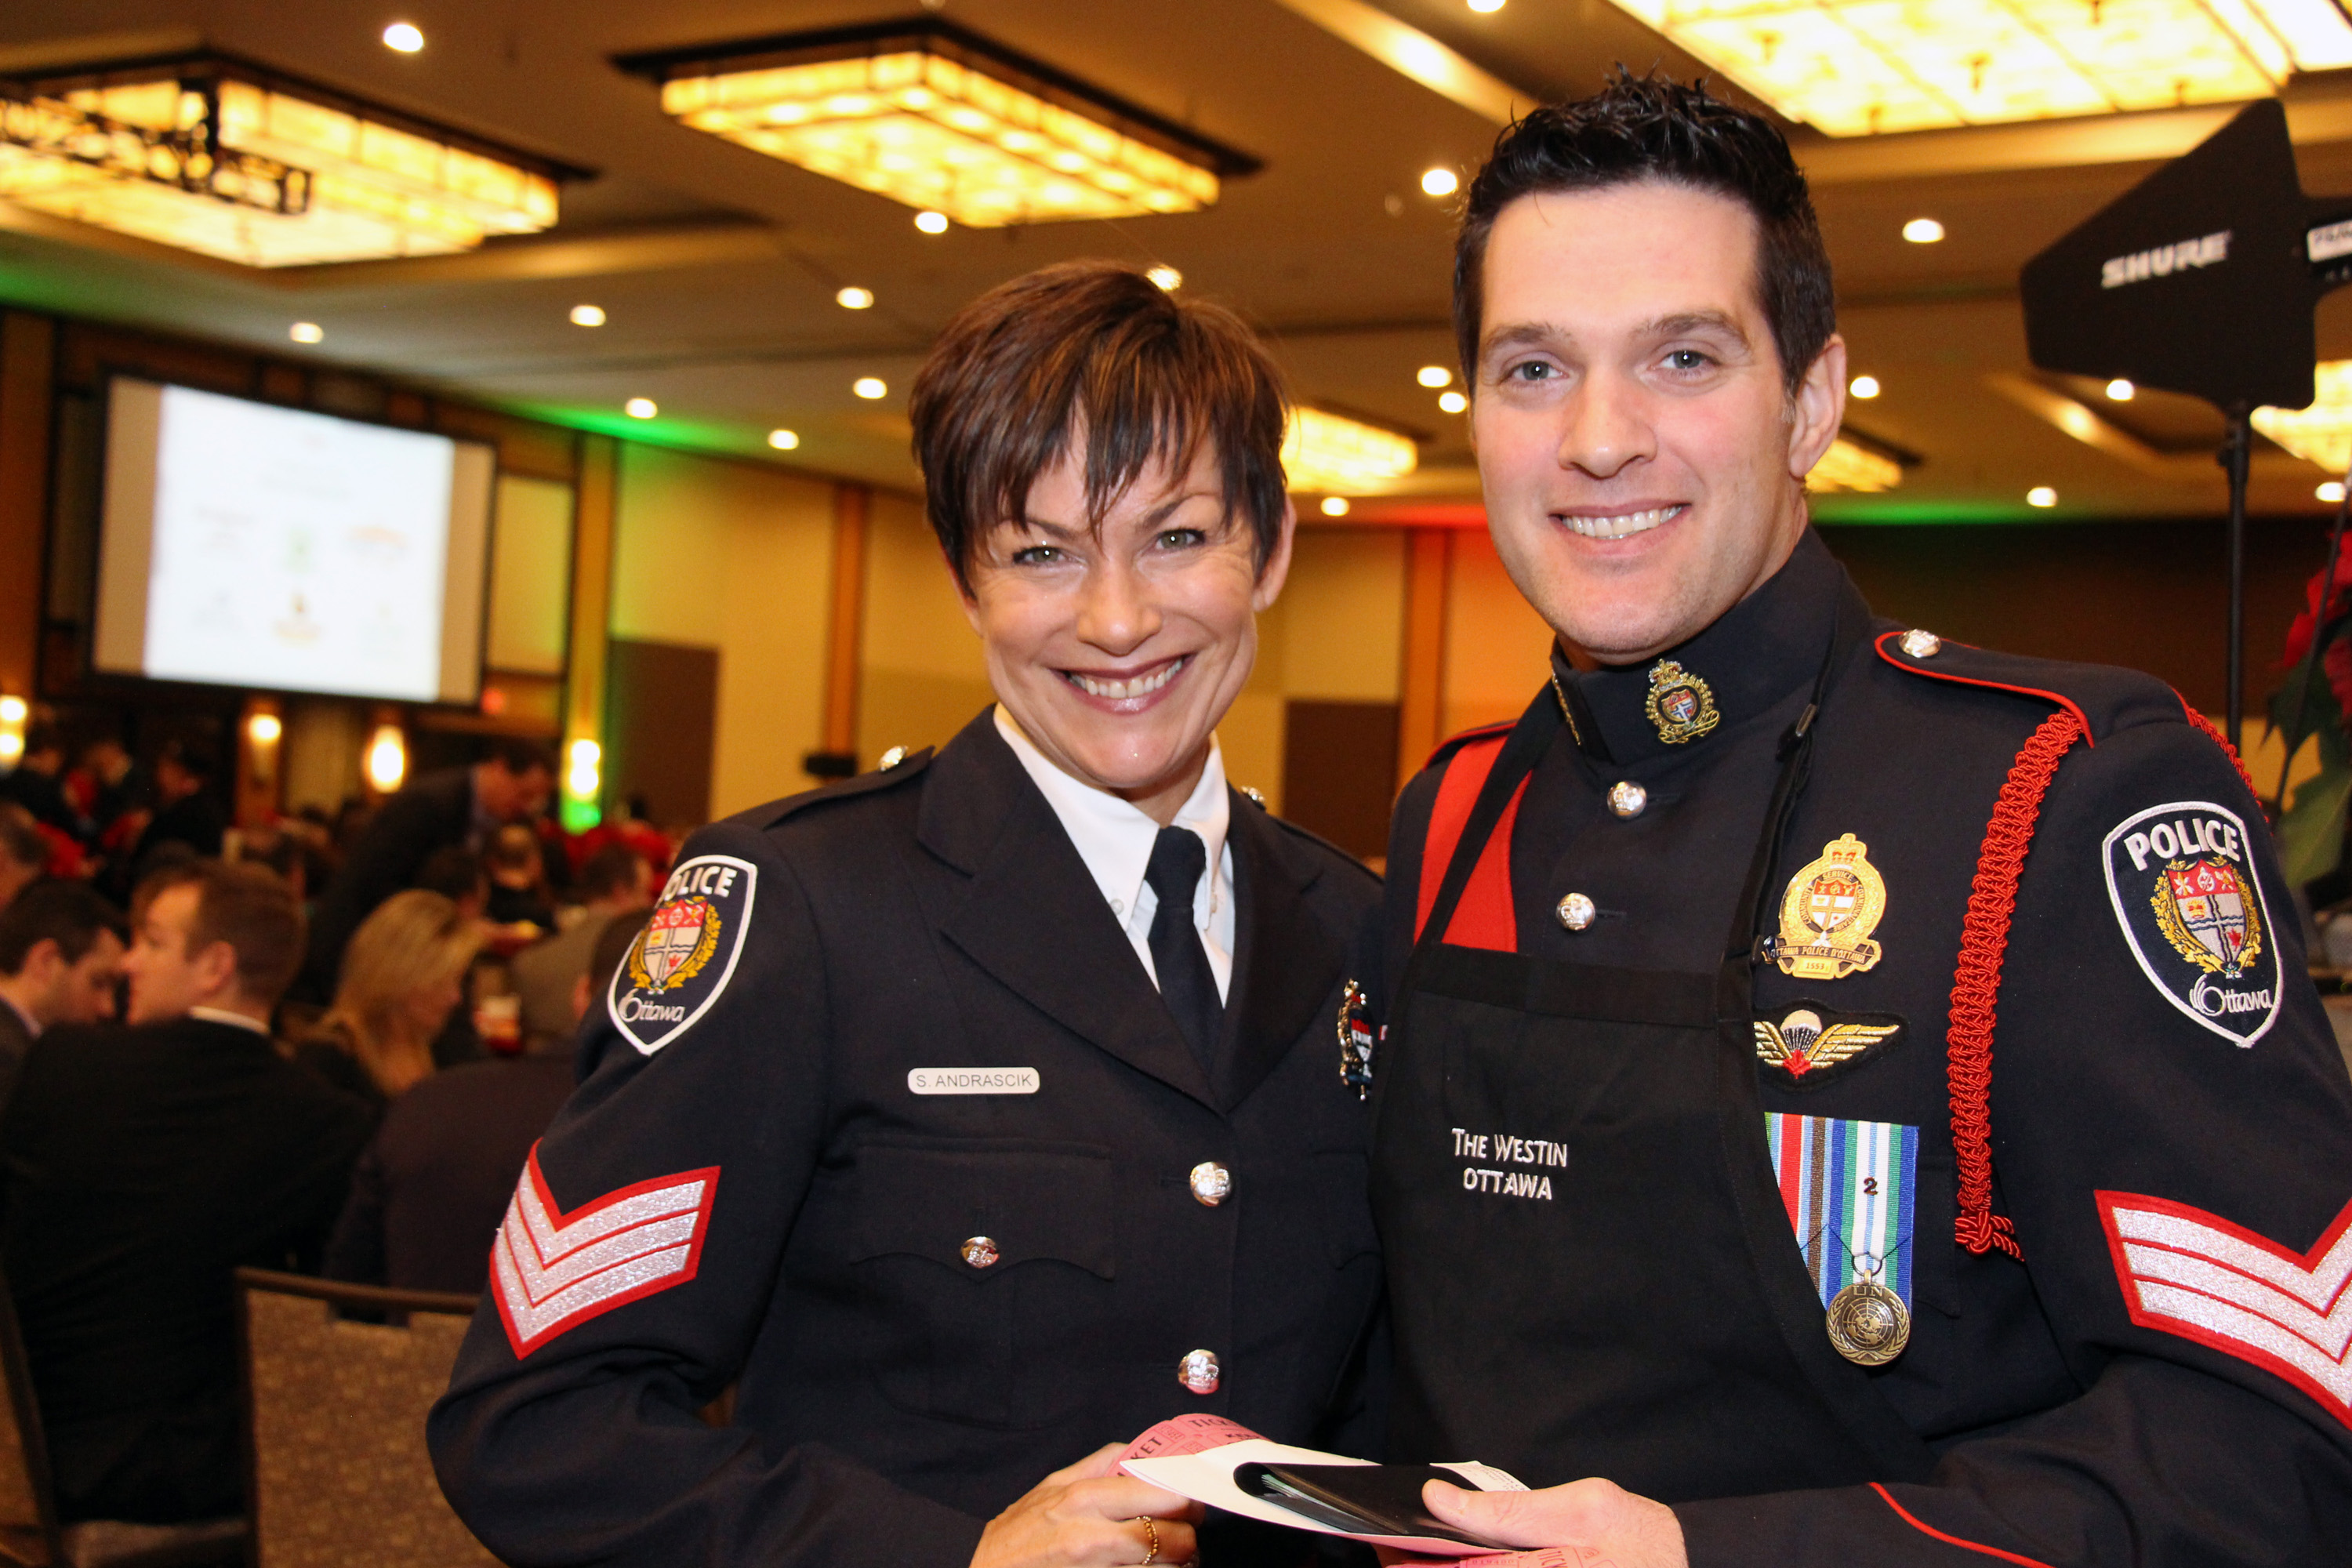 Christmas Cheer Breakfast at the Westin raises $120,000 for